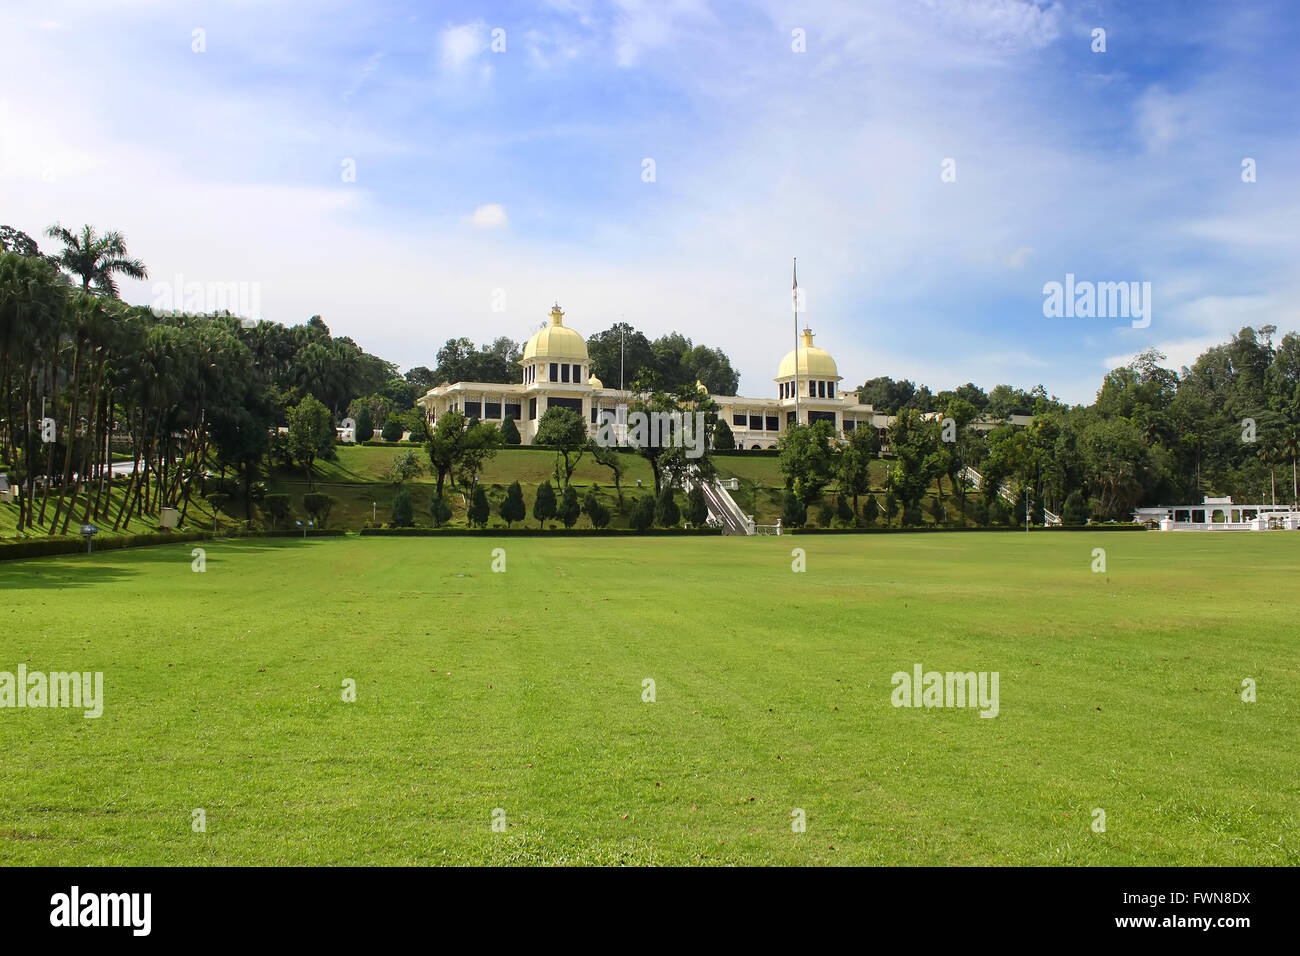 Park in Malaysia old Royal Palace during its public open days in Kuala Lumpur, Malaysia - Stock Image